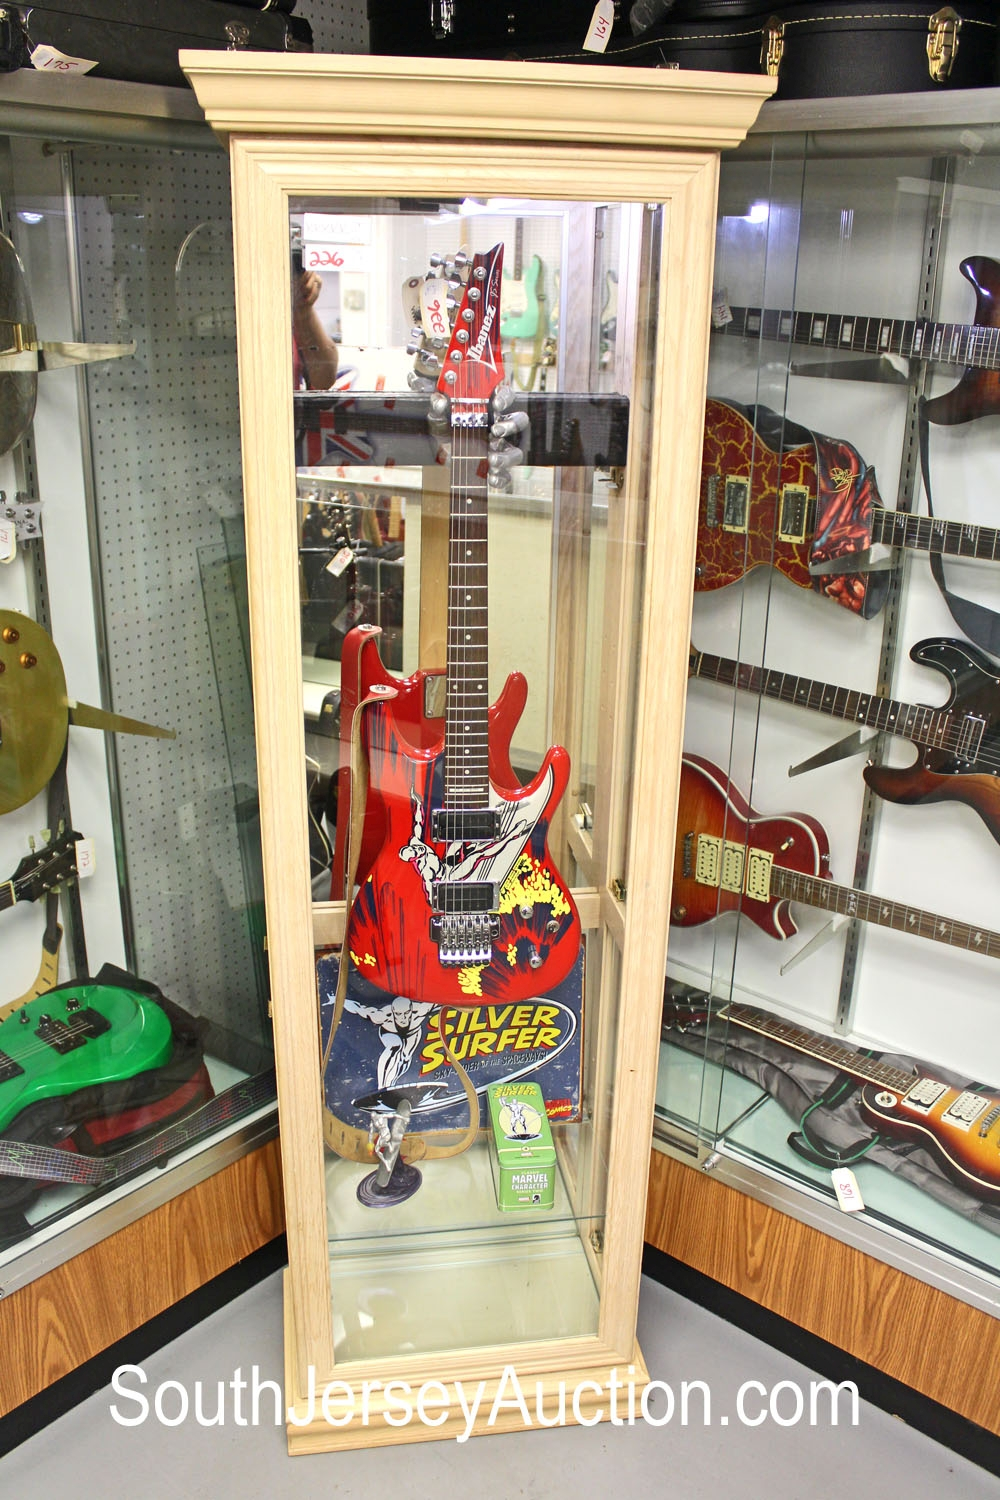 20th Anniversary Joe Satriani 'Surfing with the Alien' and all the case candy guitar and a custom-made wood and glass floor model display case with Silver Surfer metal advertisement guitar holder hand, with state and memorabilia (5 piece lot)